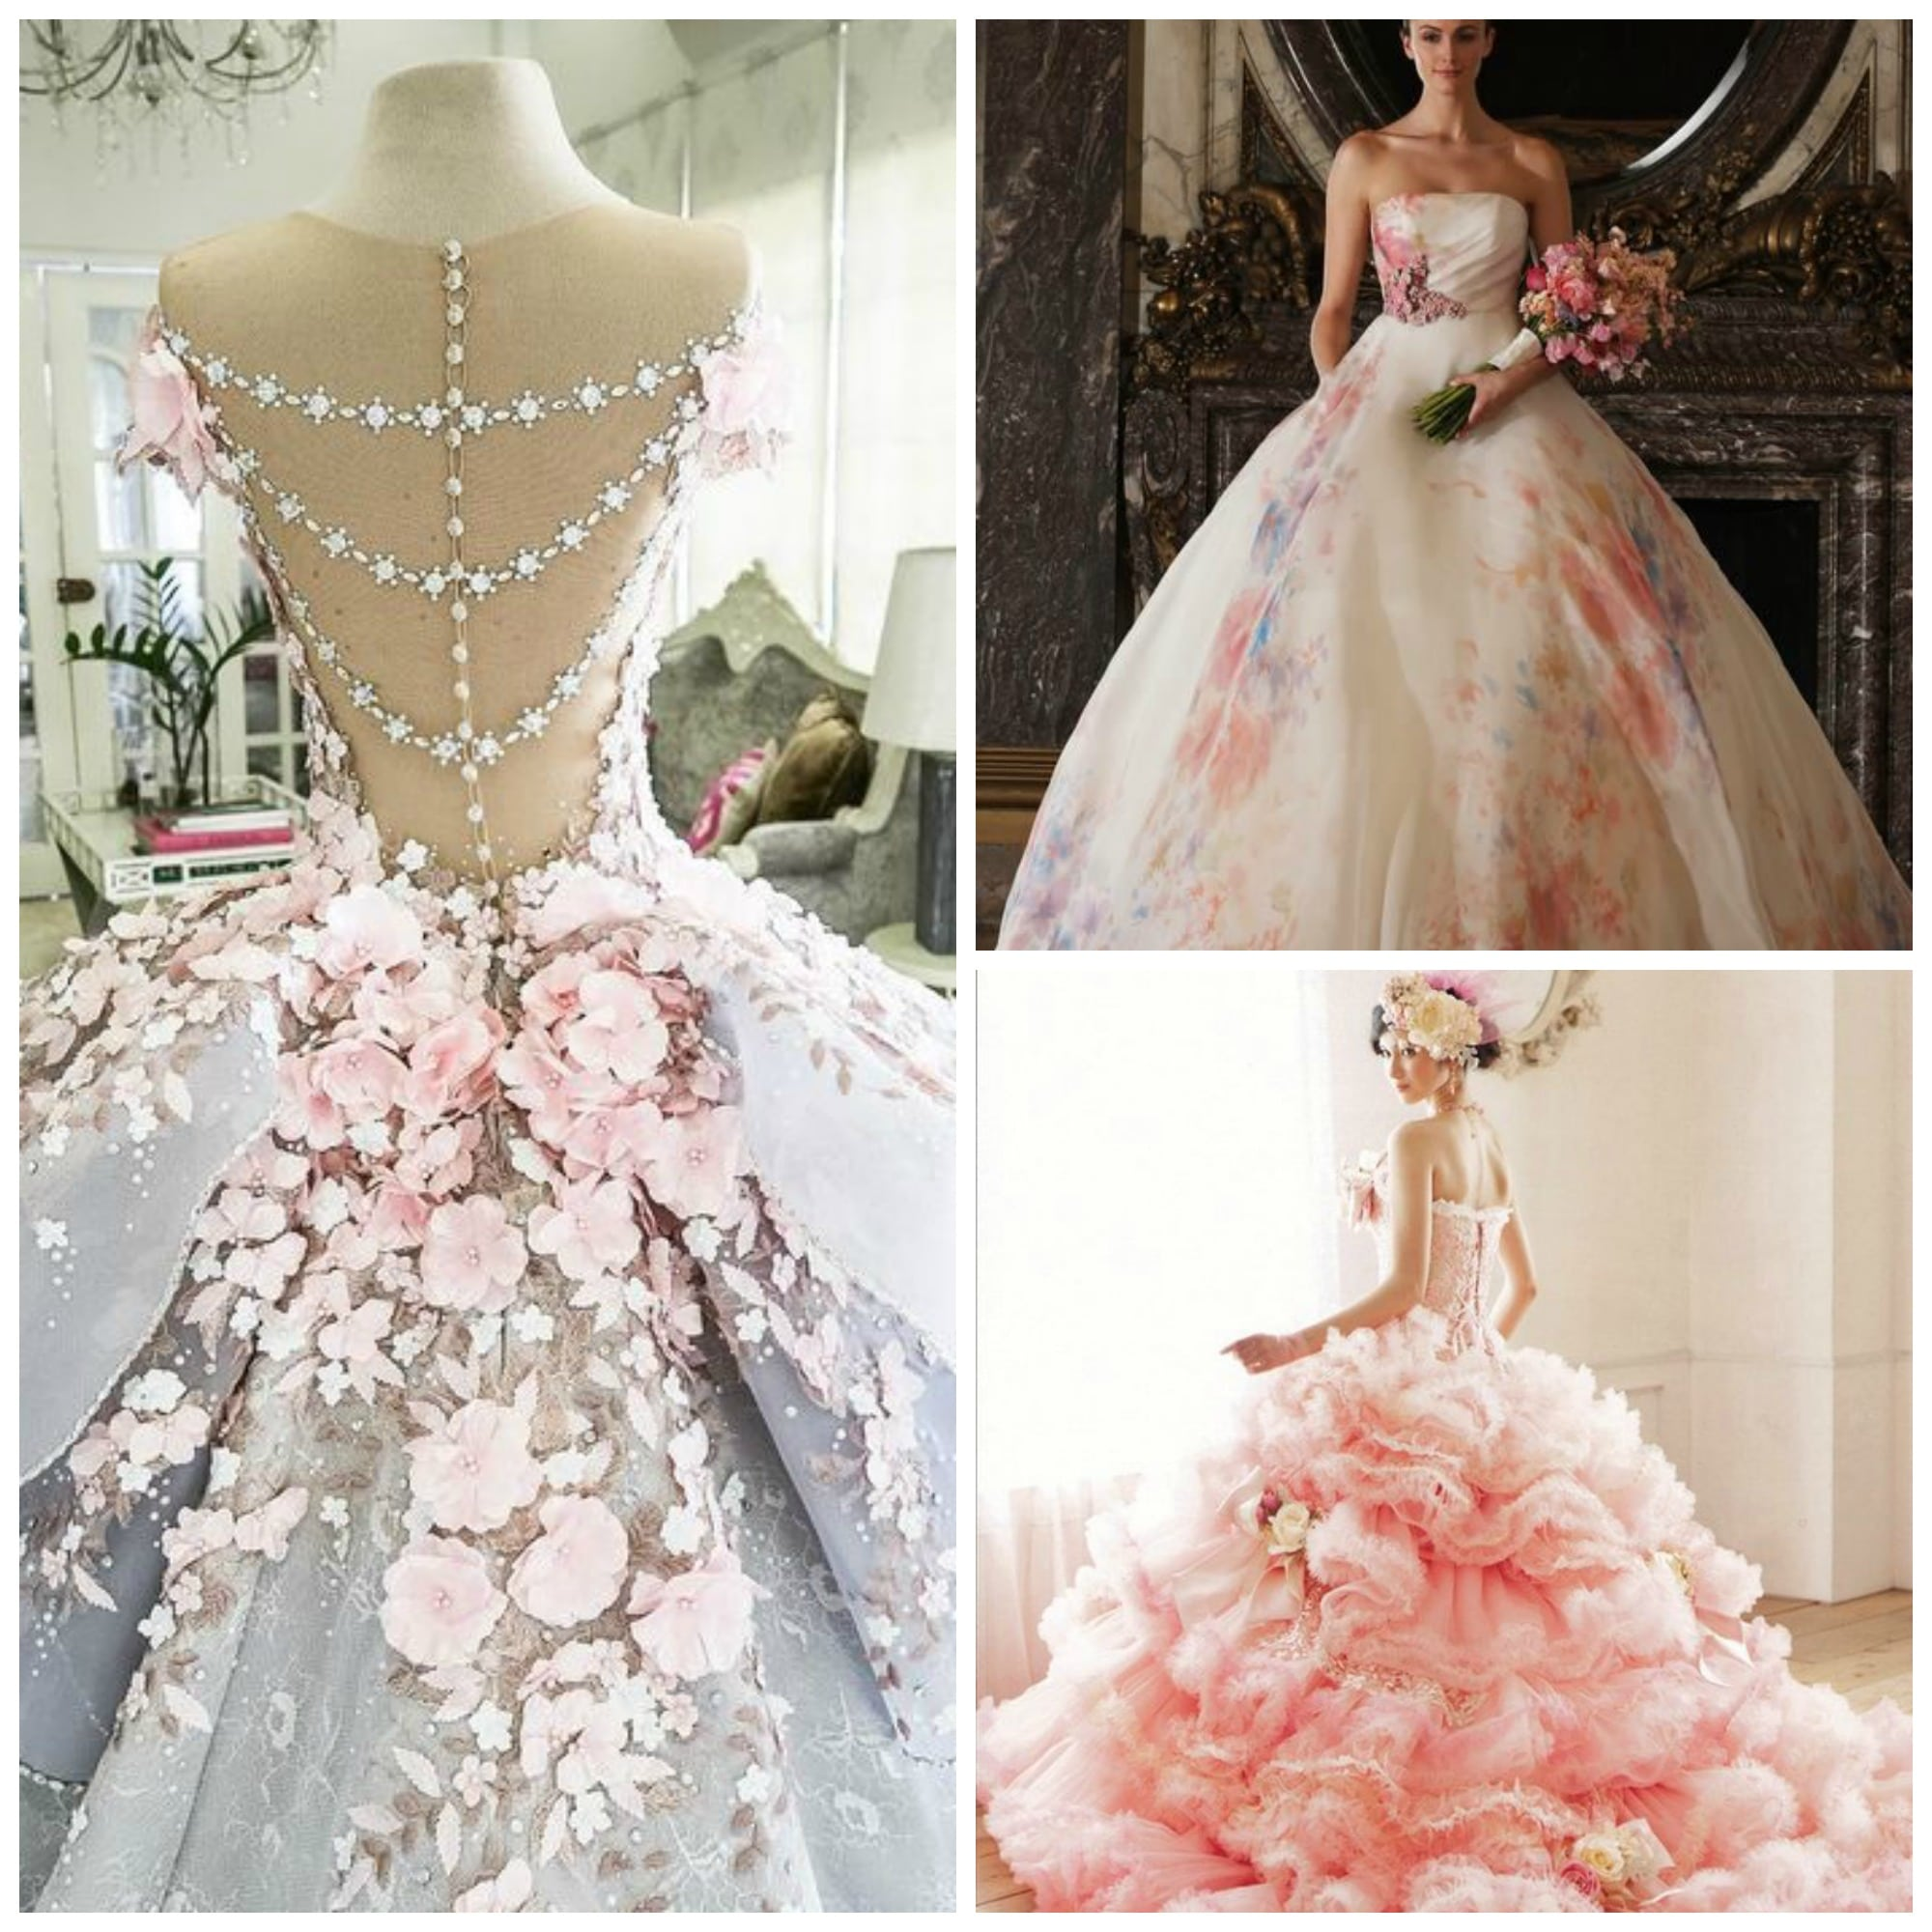 20 Unbelievably Extravagant Wedding DressesThe Gilded Gown The